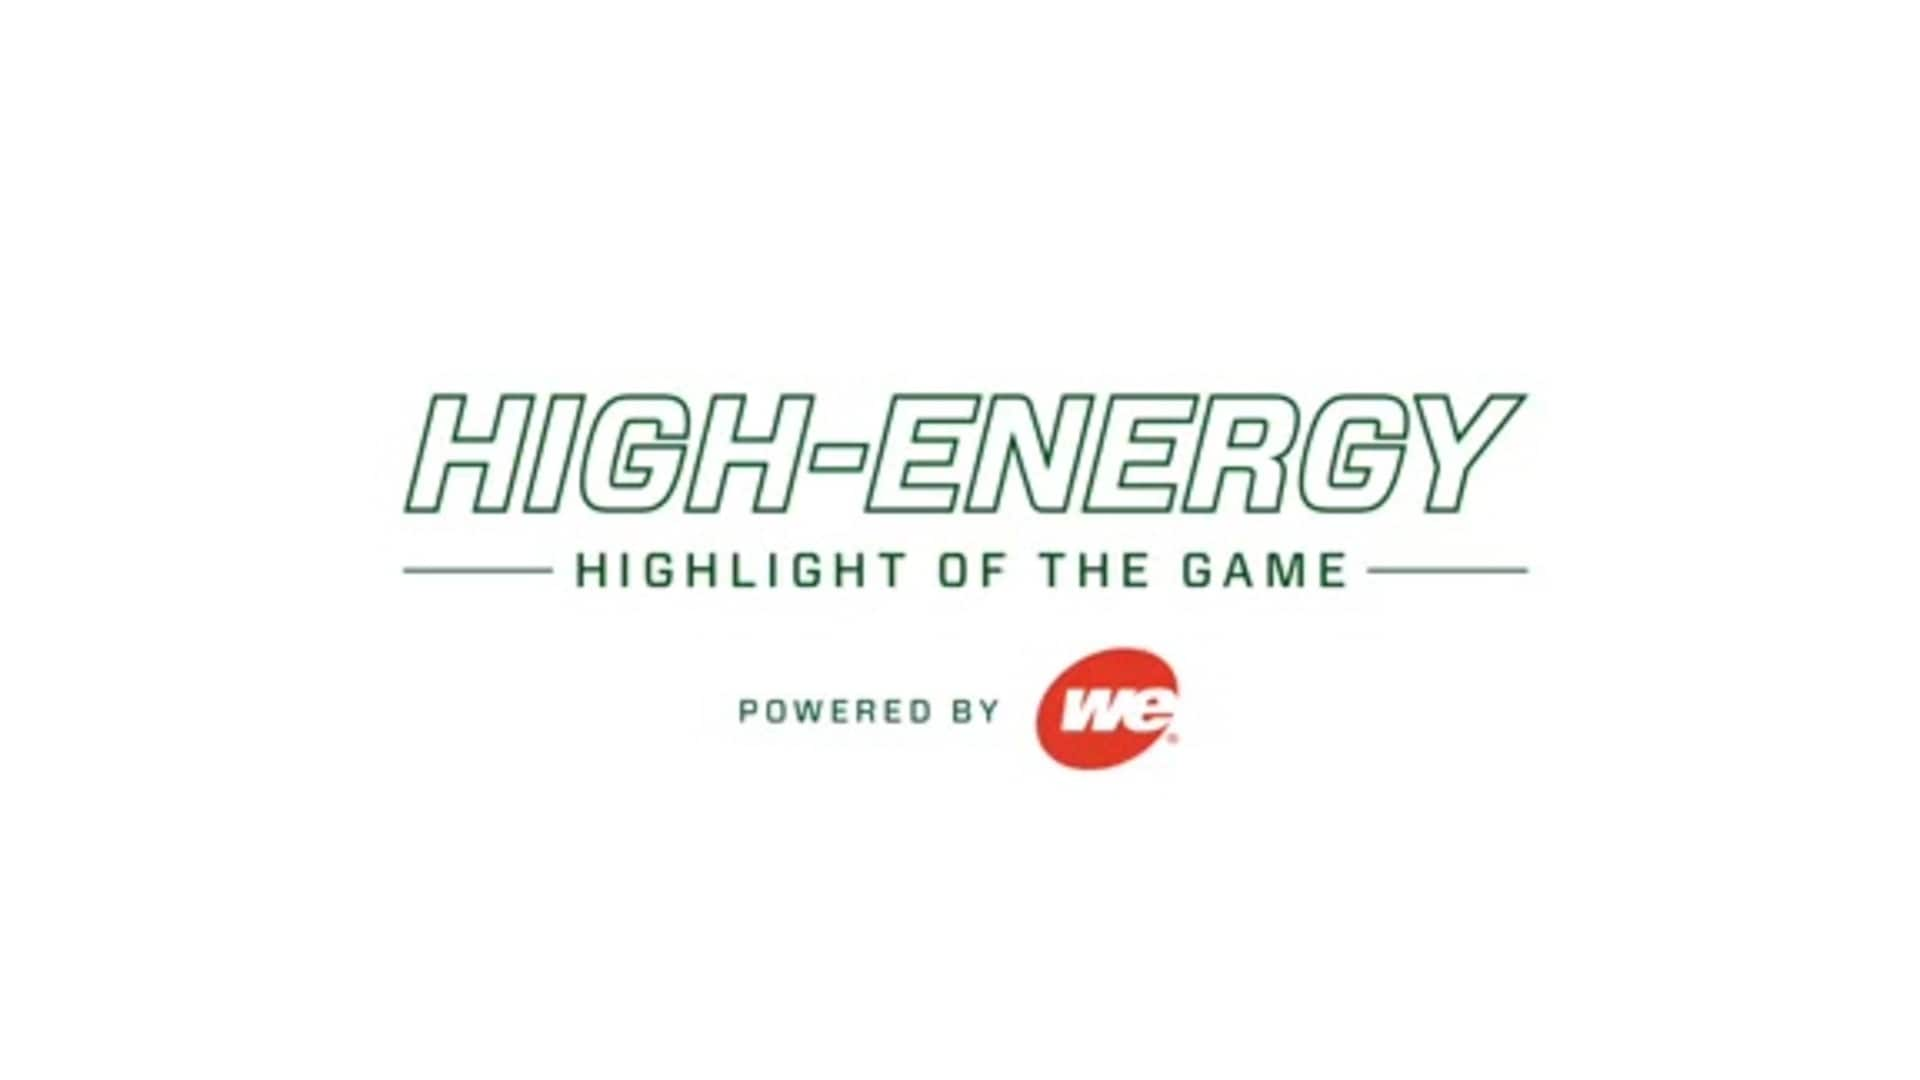 We Energies High-Energy Highlight vs Brooklyn